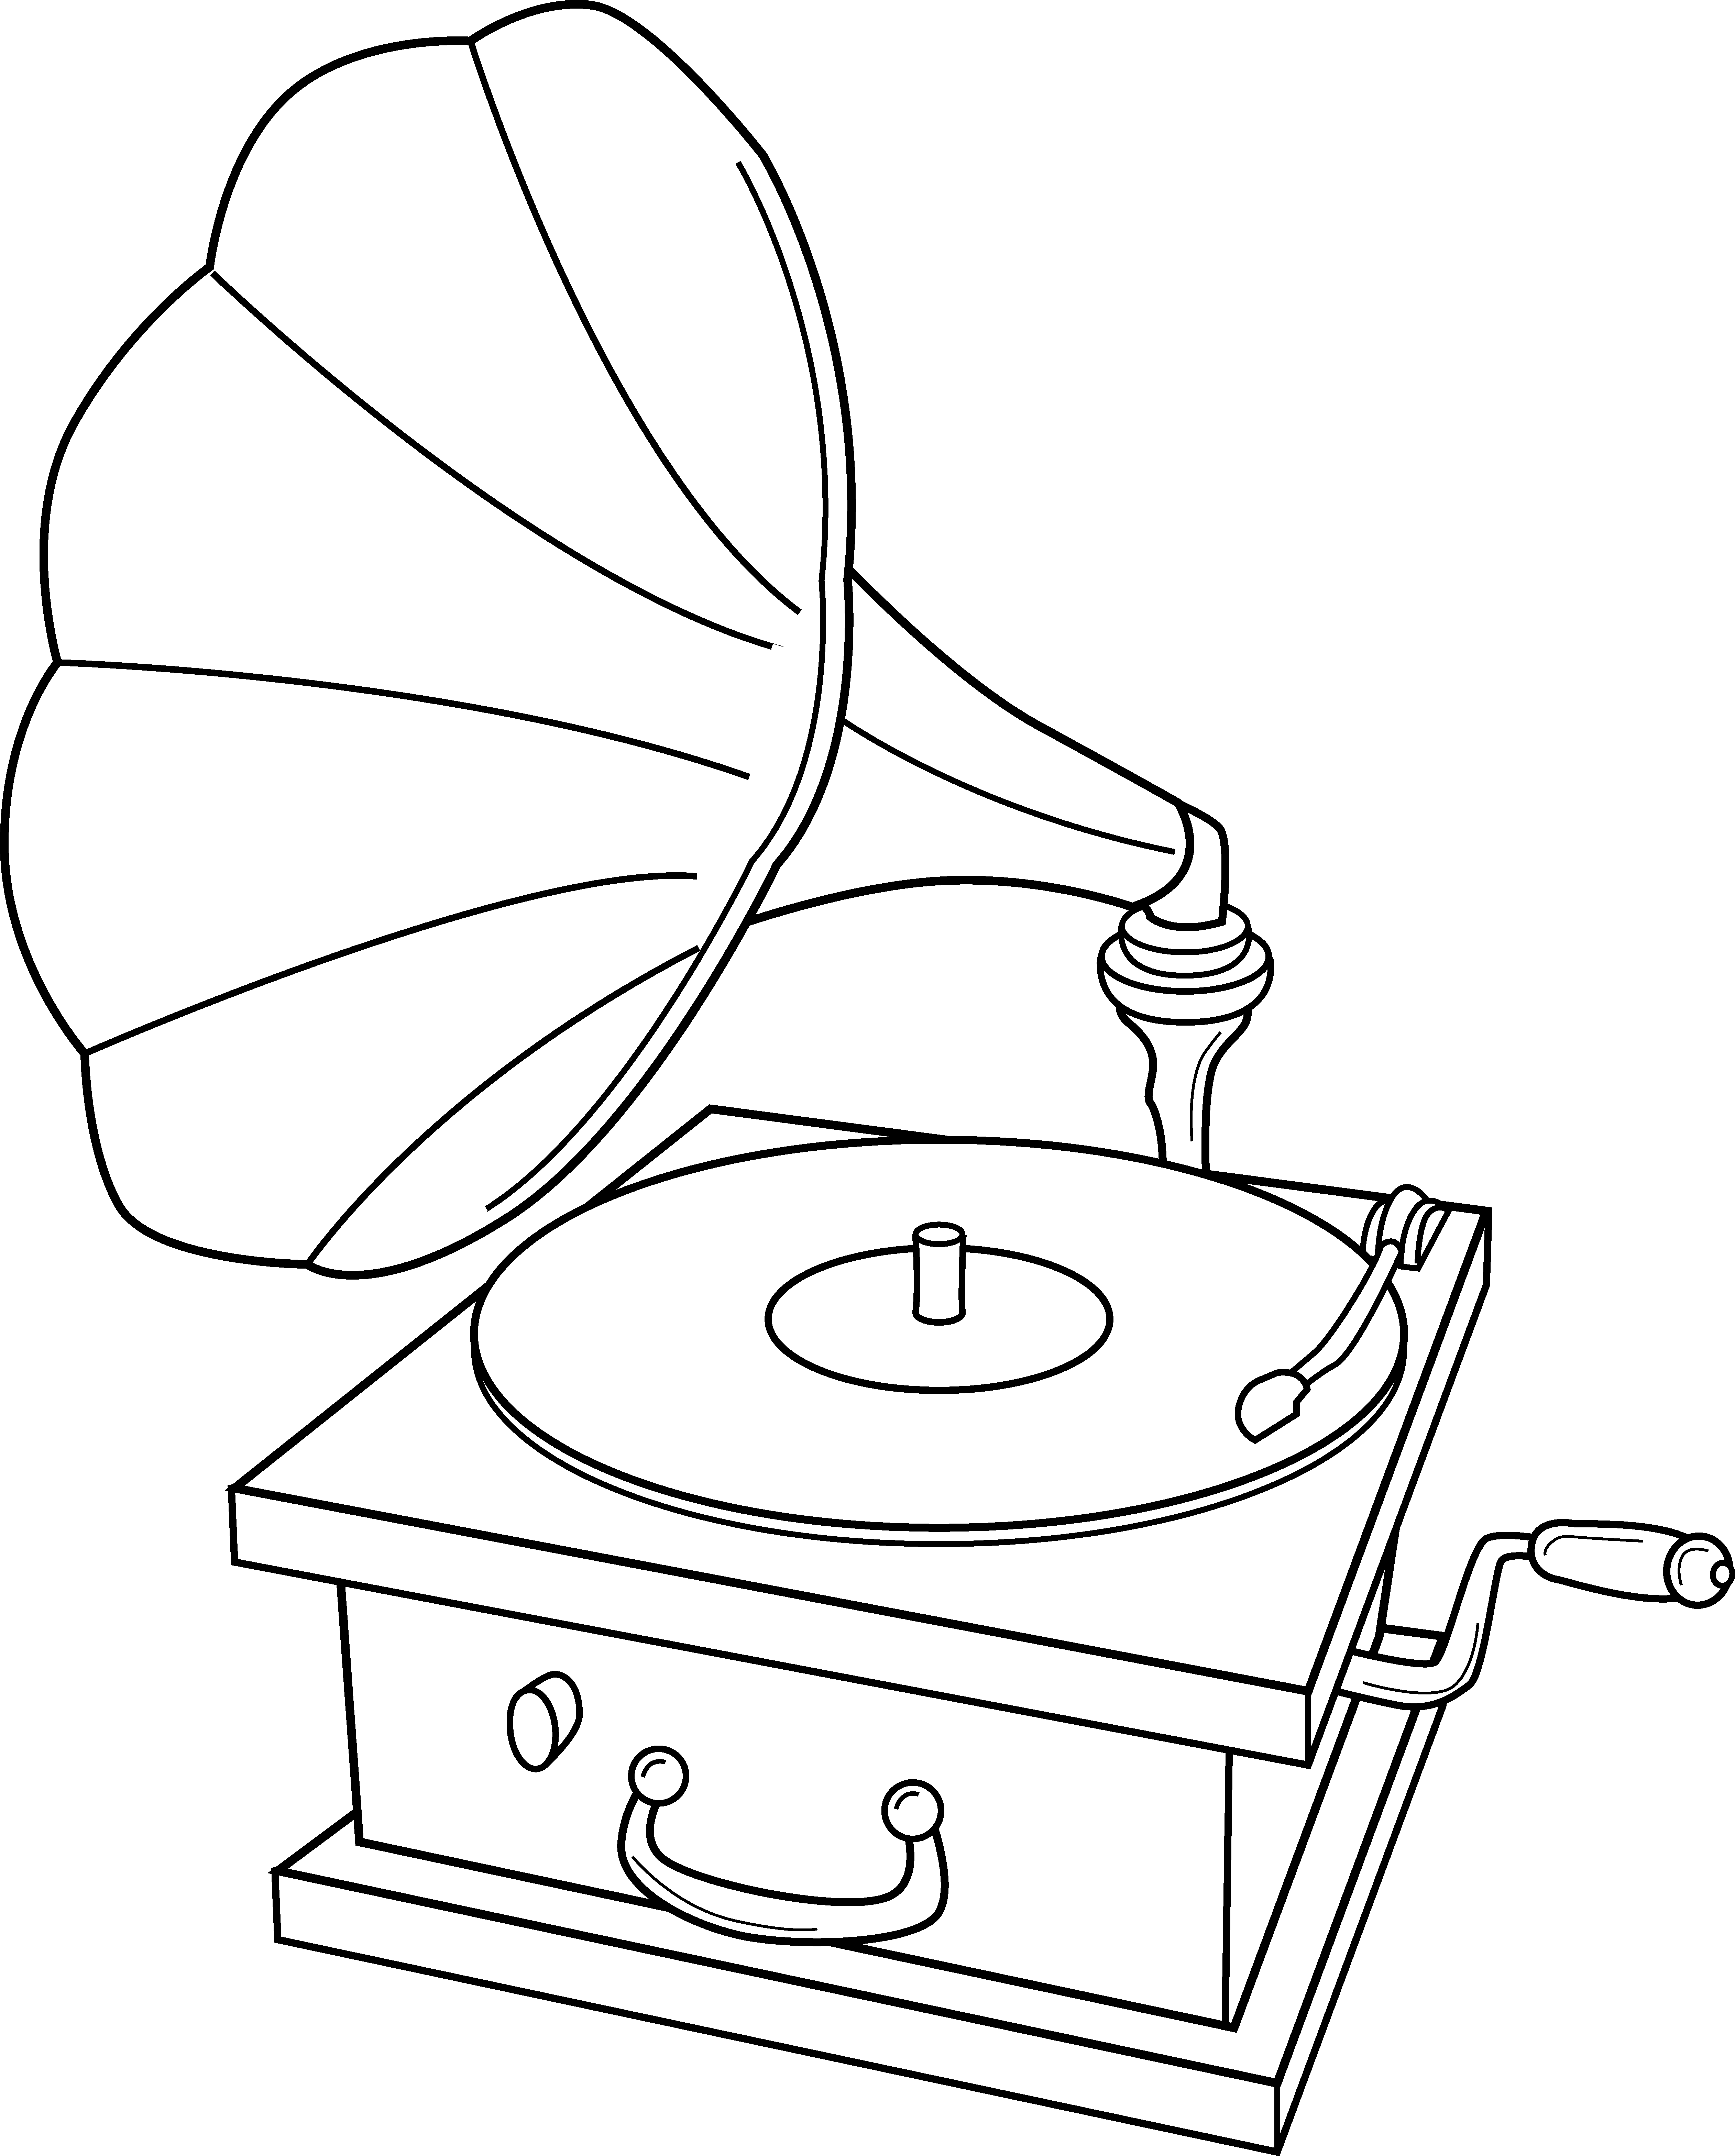 Antique book free clipart banner freeuse library Old Record Player Drawing at GetDrawings.com | Free for personal use ... banner freeuse library